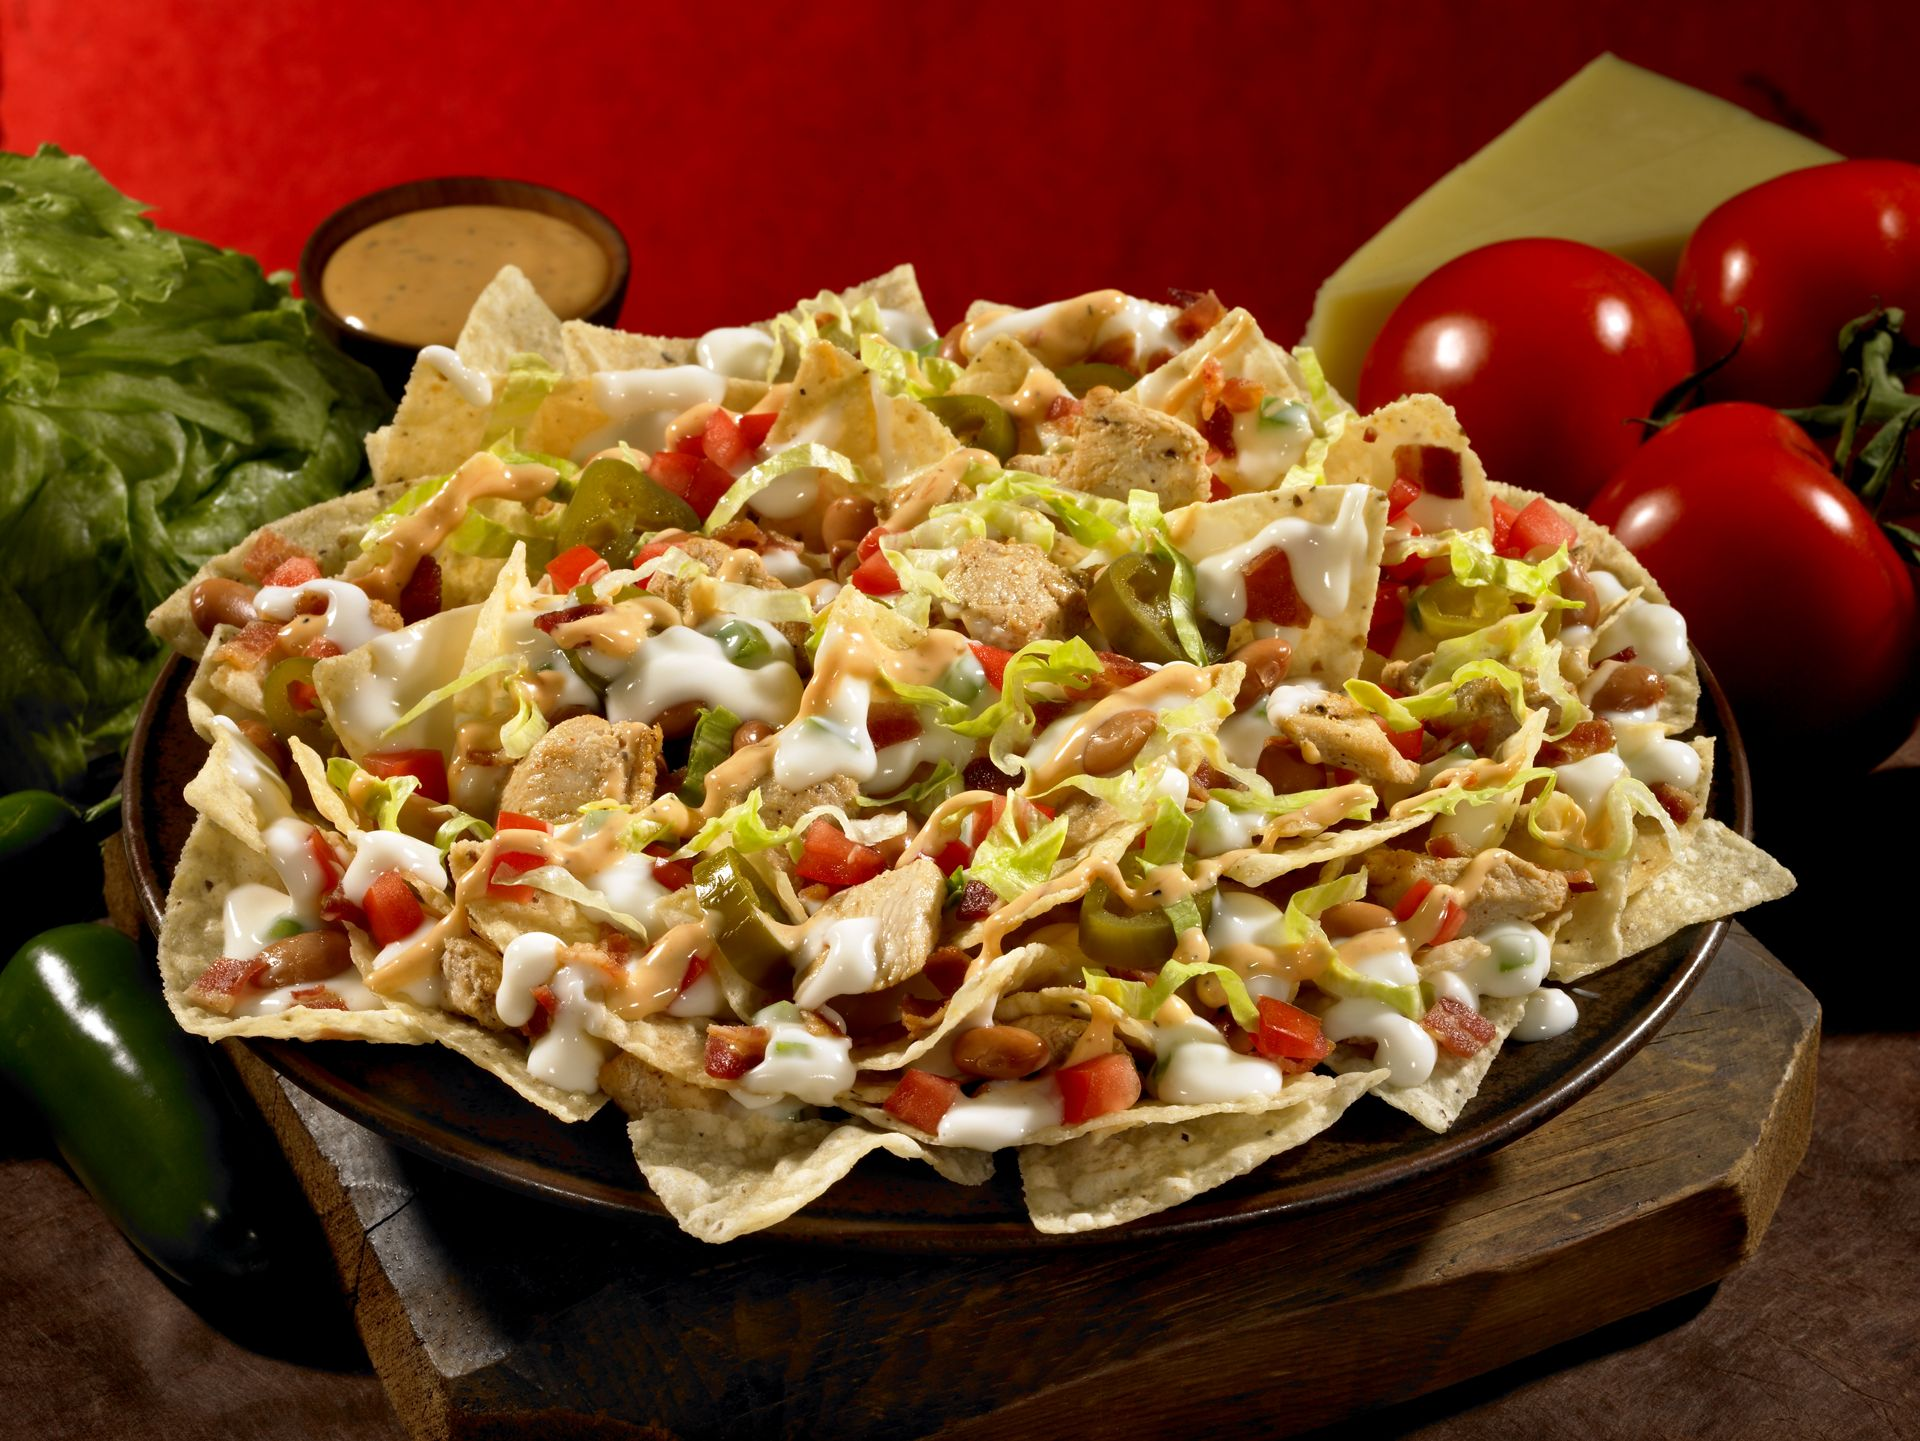 Chicken Club is Back at Moe's & This Time Nachos Join the Mix